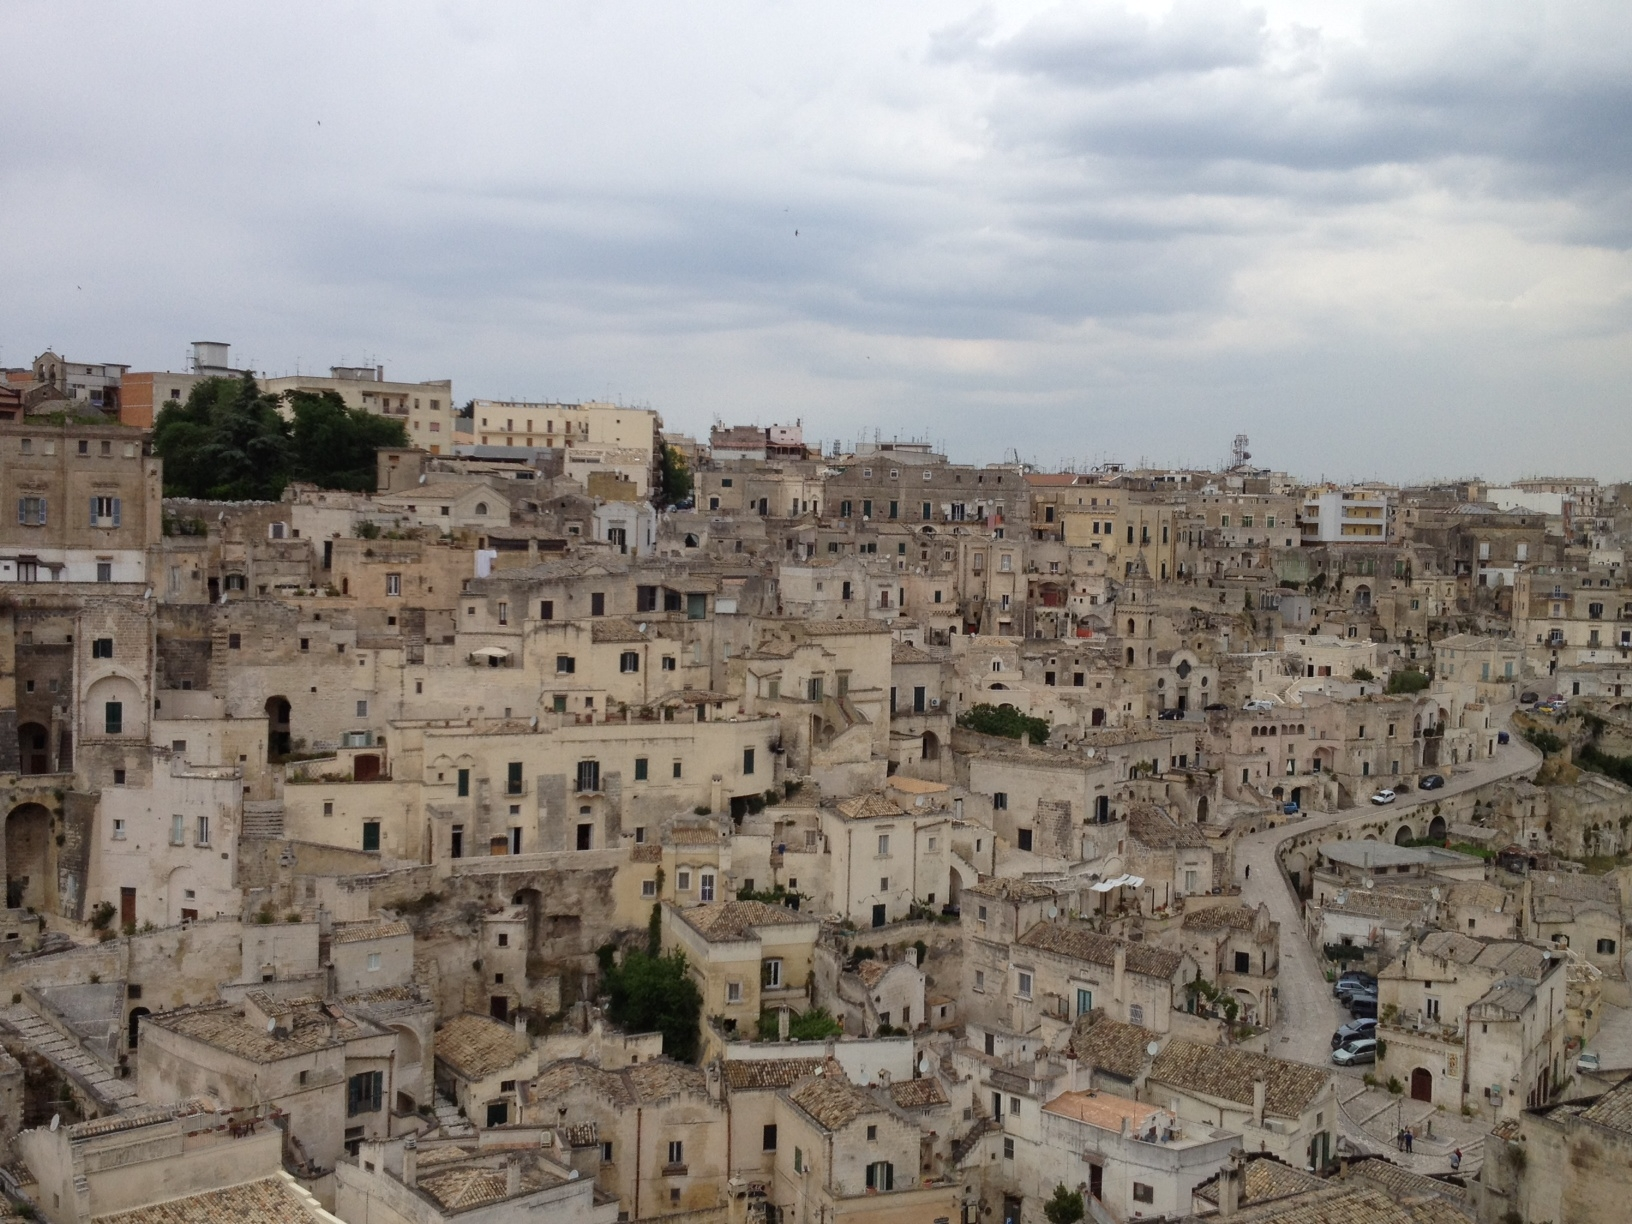 Photo Essay Part 2: Matera, Italy – Cave Hotel, Piazza, Festival and More